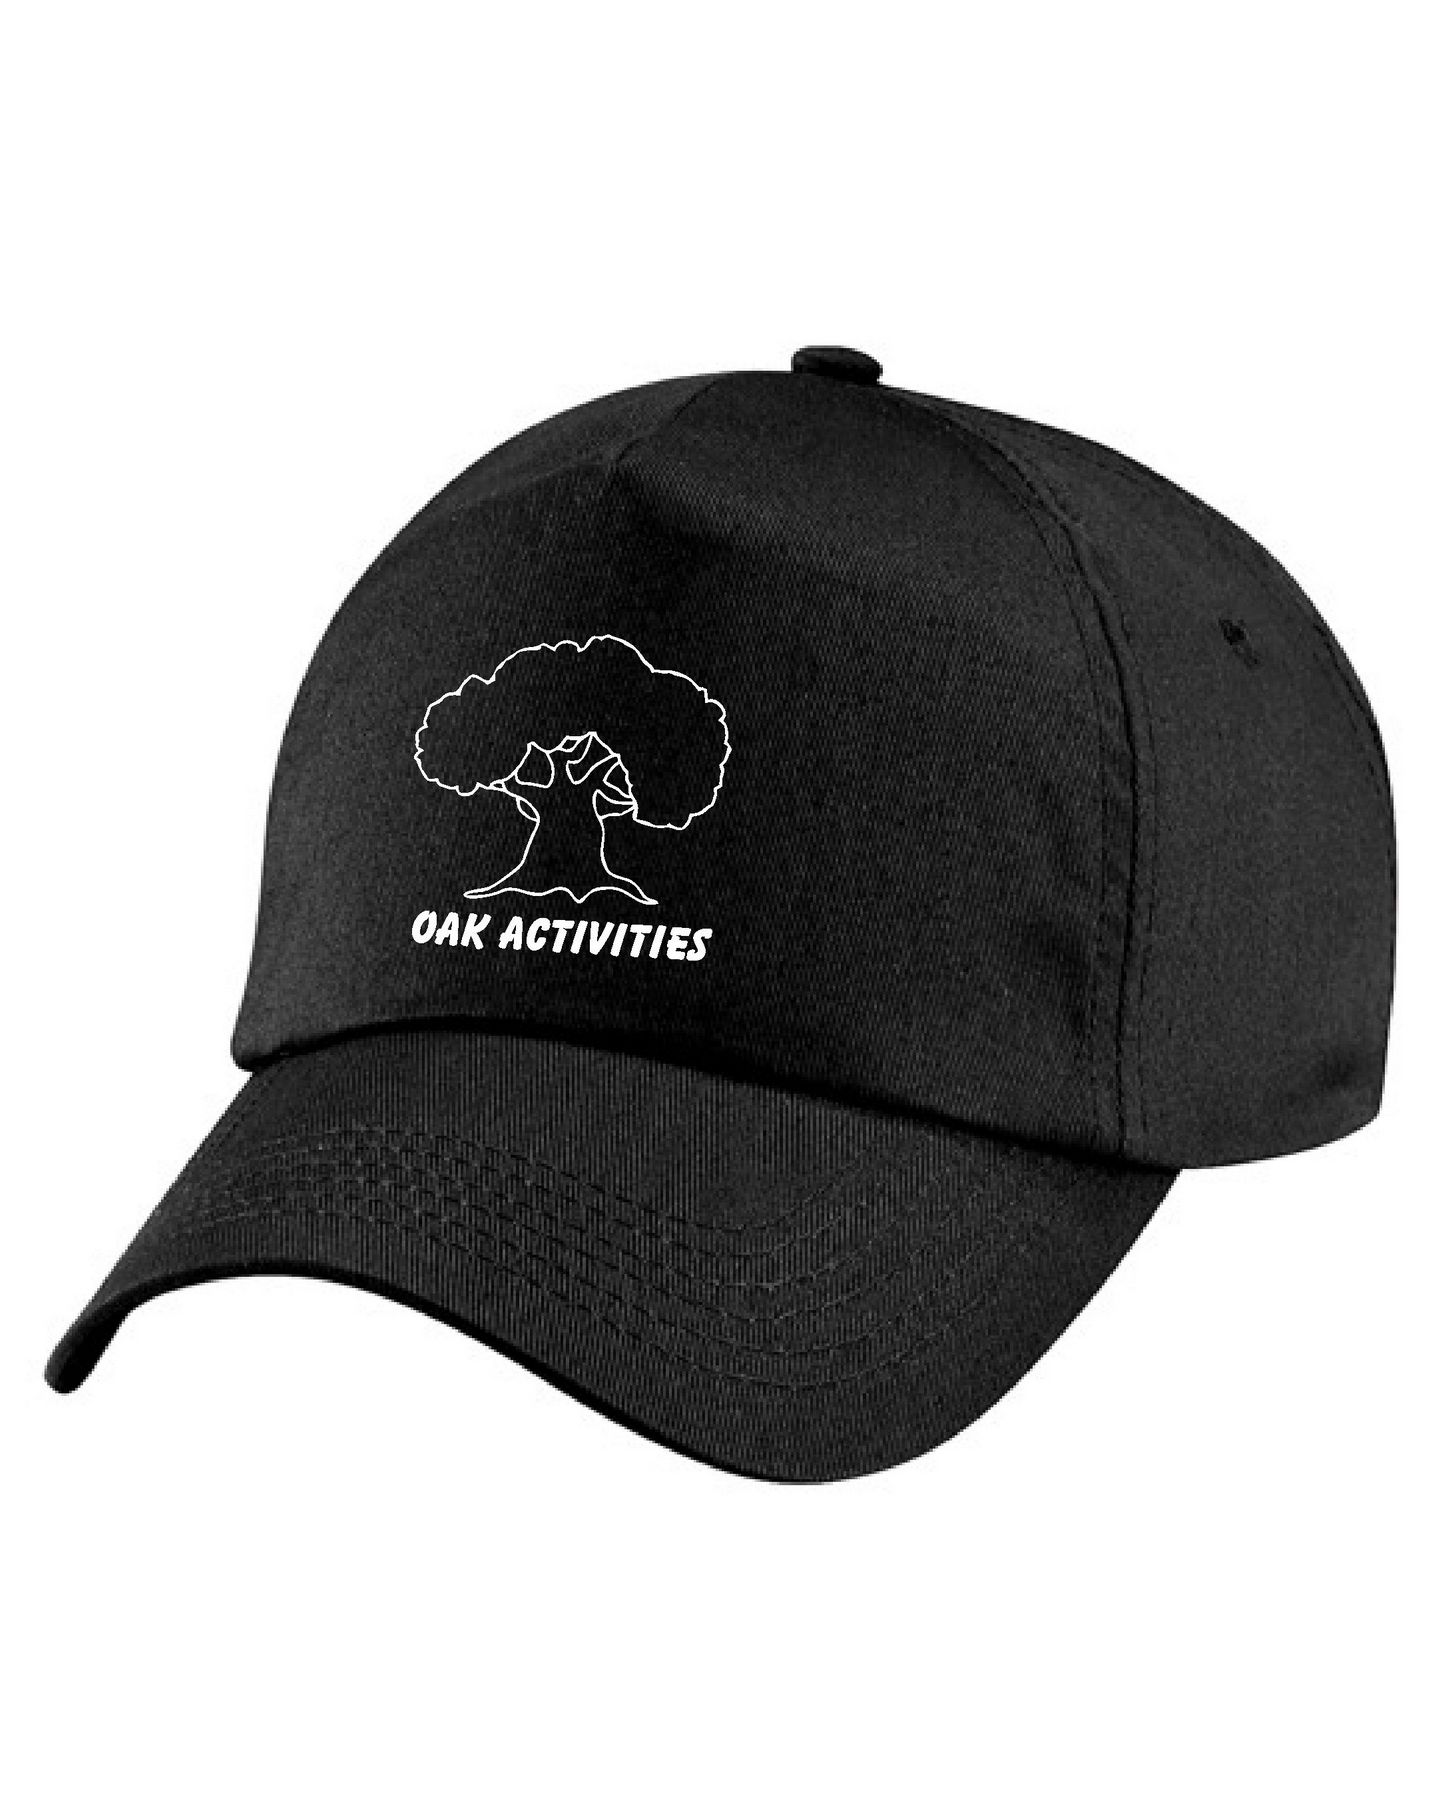 Oak Activities – Junior Cap (Black)